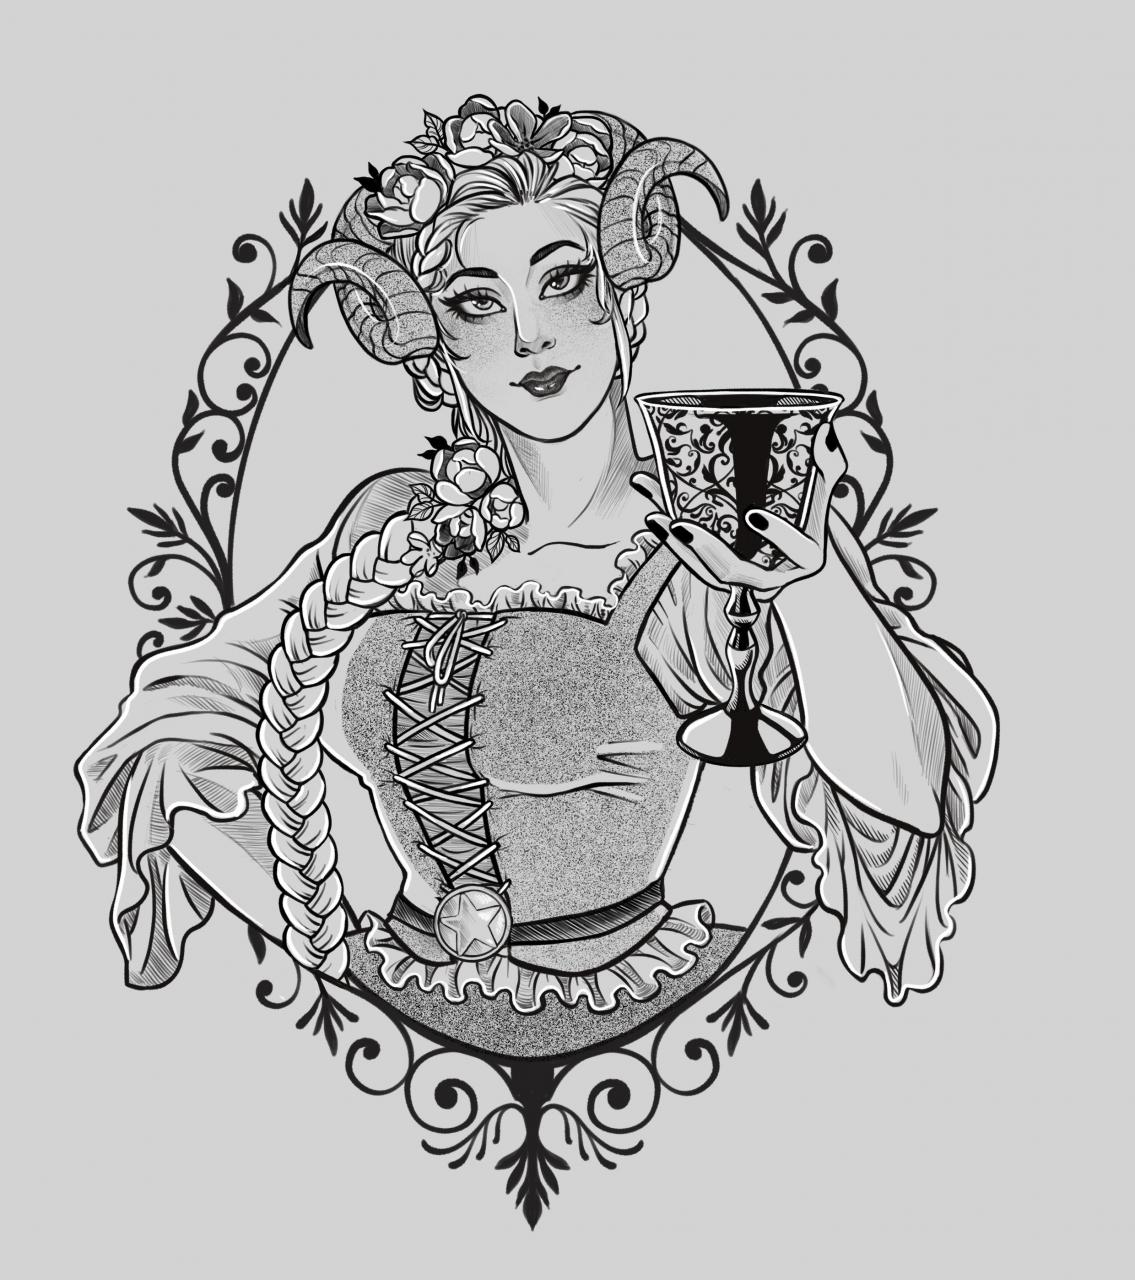 [For hire] Tattoo designs for hire! I work mostly with florals, girls, pets, creatures/fantasy and anime. Portfolio in the comments!